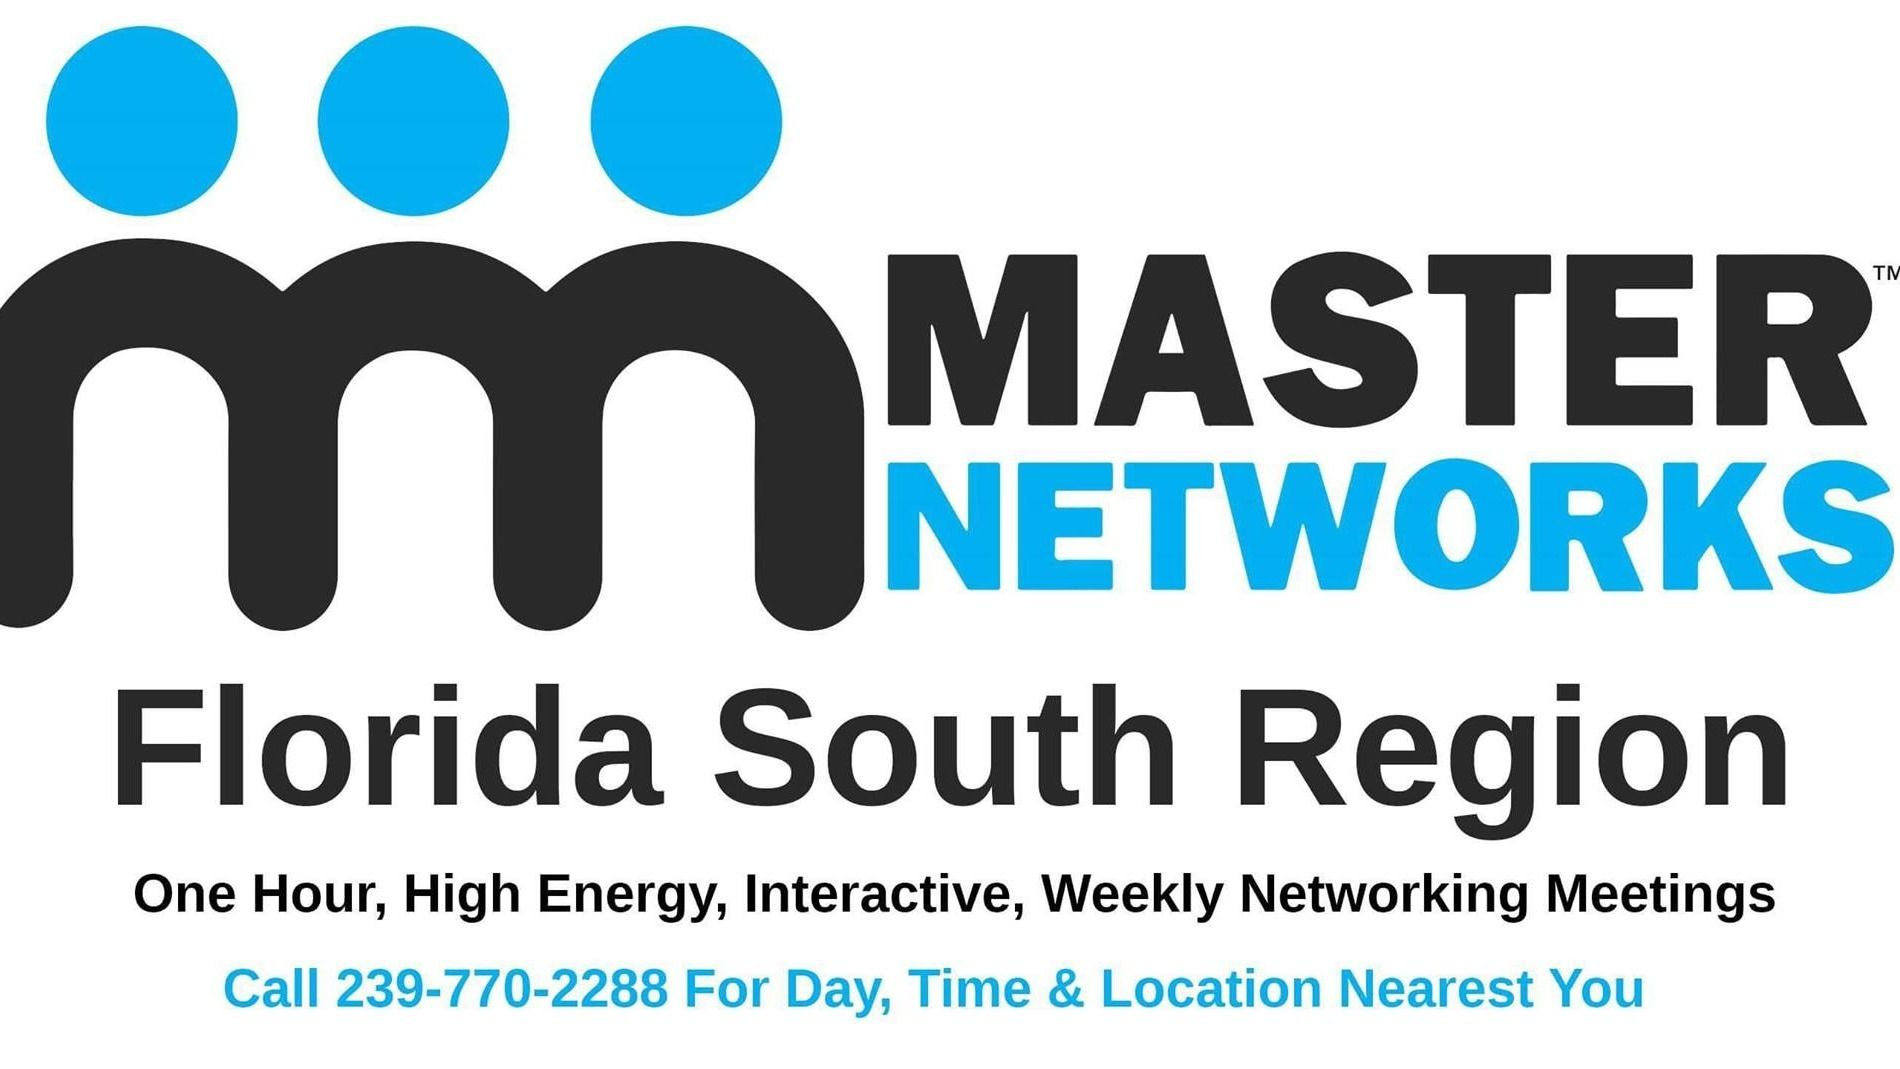 Master Networks-Florida South Region-Cape Coral/Ft. Myers